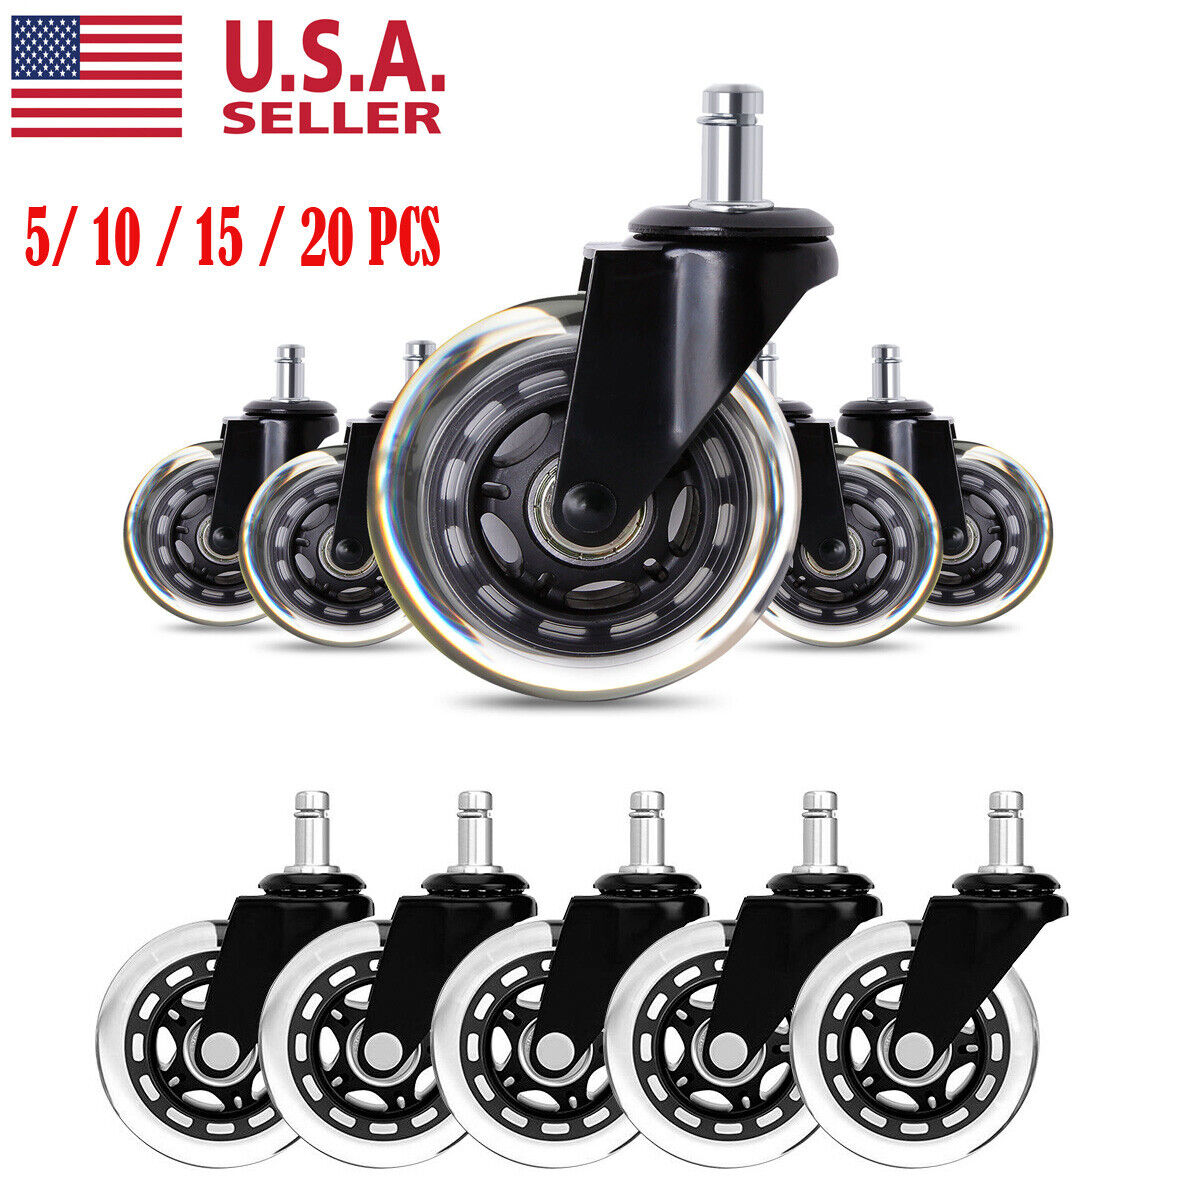 5/20PCS Office Chair Caster Rubber Swivel Wheels Replacement